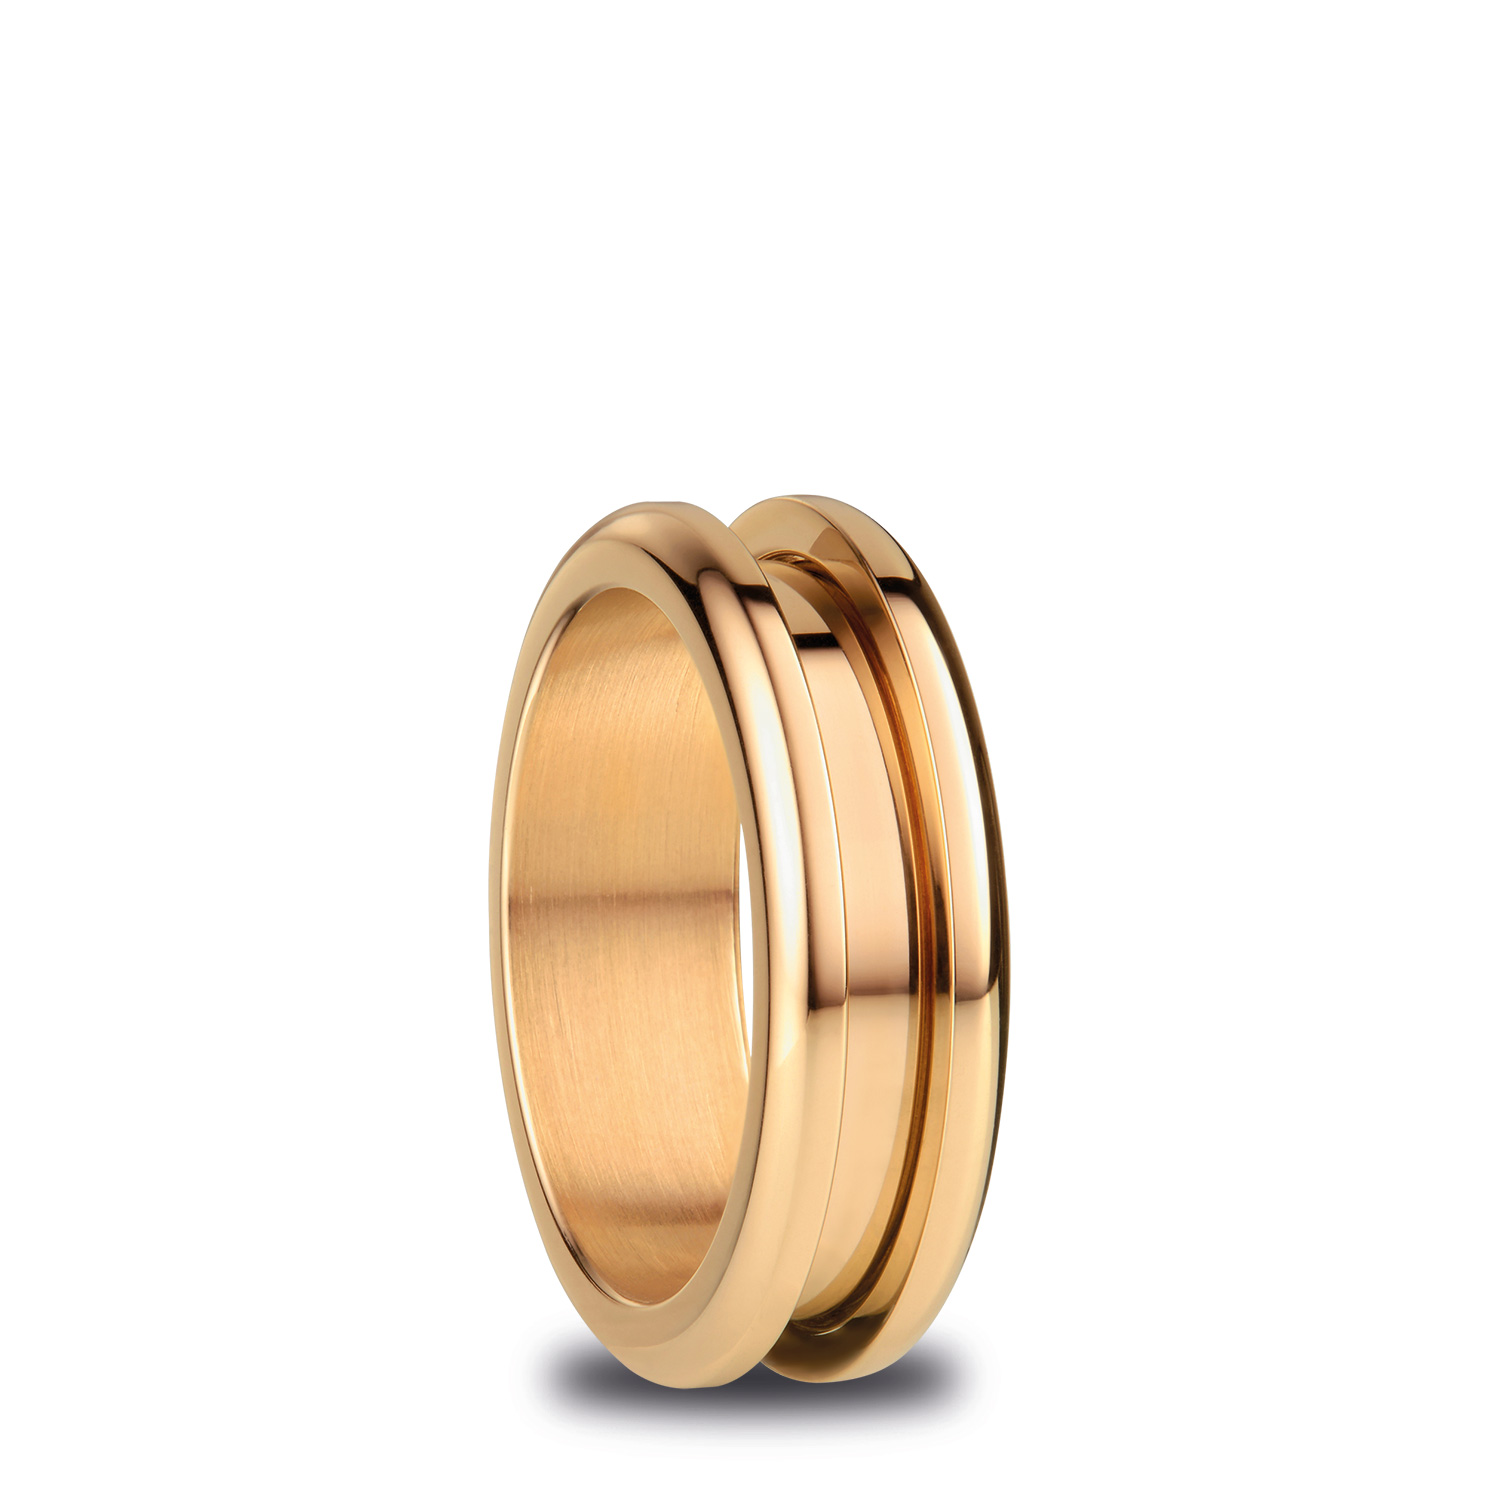 BERING Arctic Symphony Size 55 17.4mm Diameter Polished Gold Ring 526-20-73